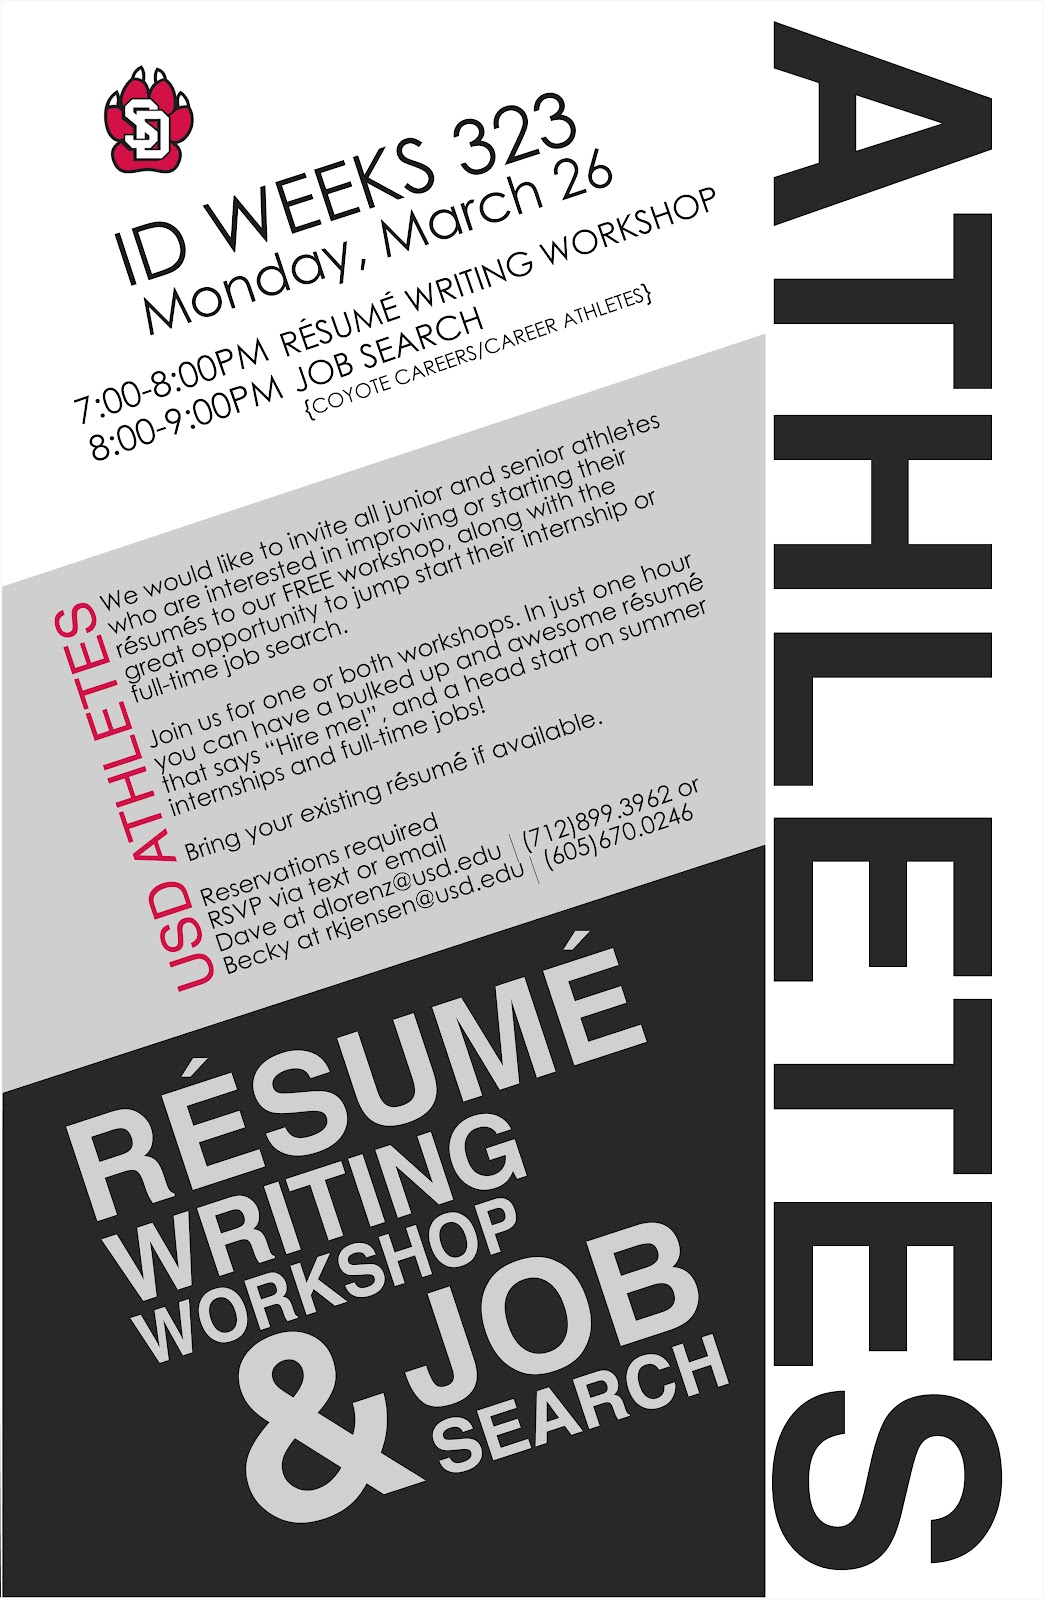 uw resume workshop 28 images higher ed info pearltrees resume